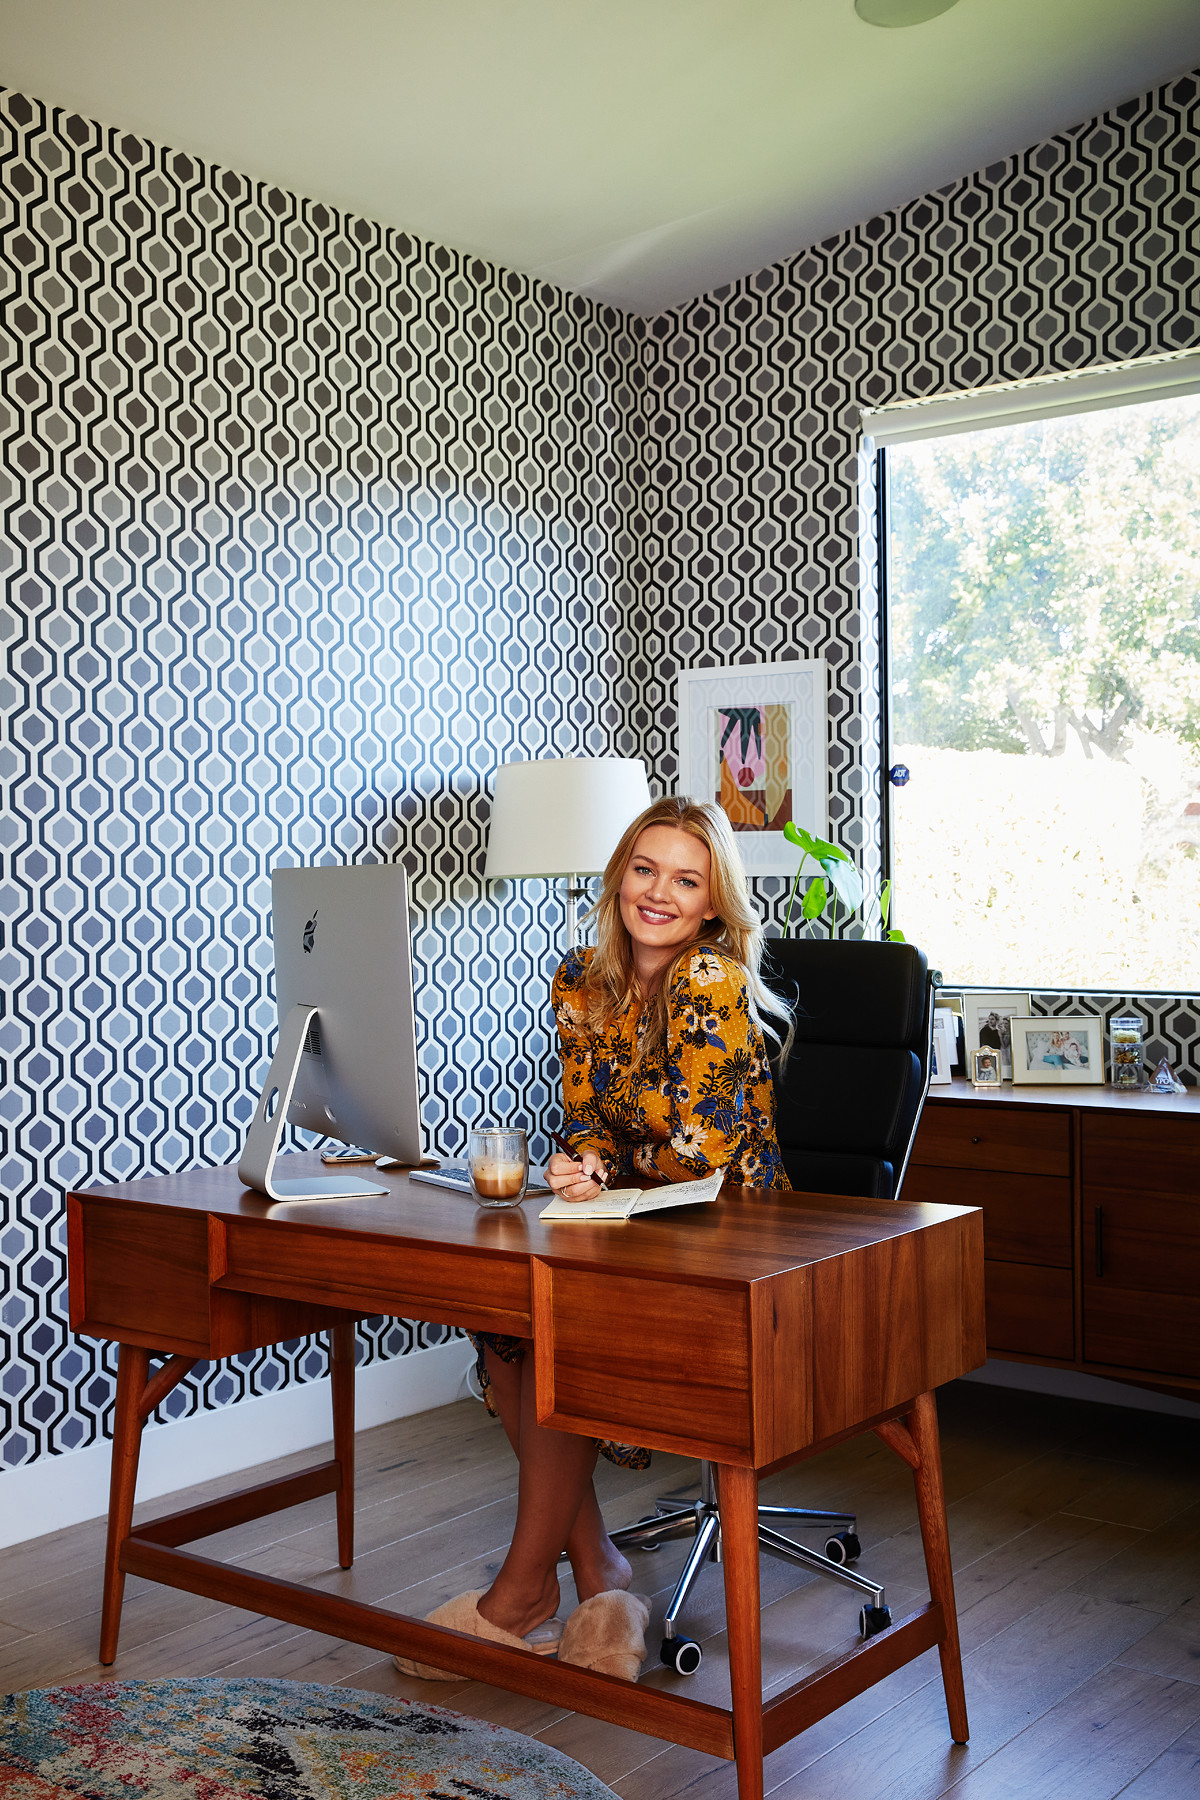 Kleinman stretched her design skills in this stylish home office with patterned wallpaper.West Elm Desk |Williams Sonoma Coffee Mug |Cole & Son Wallpaper |Pottery Barn Lamp.